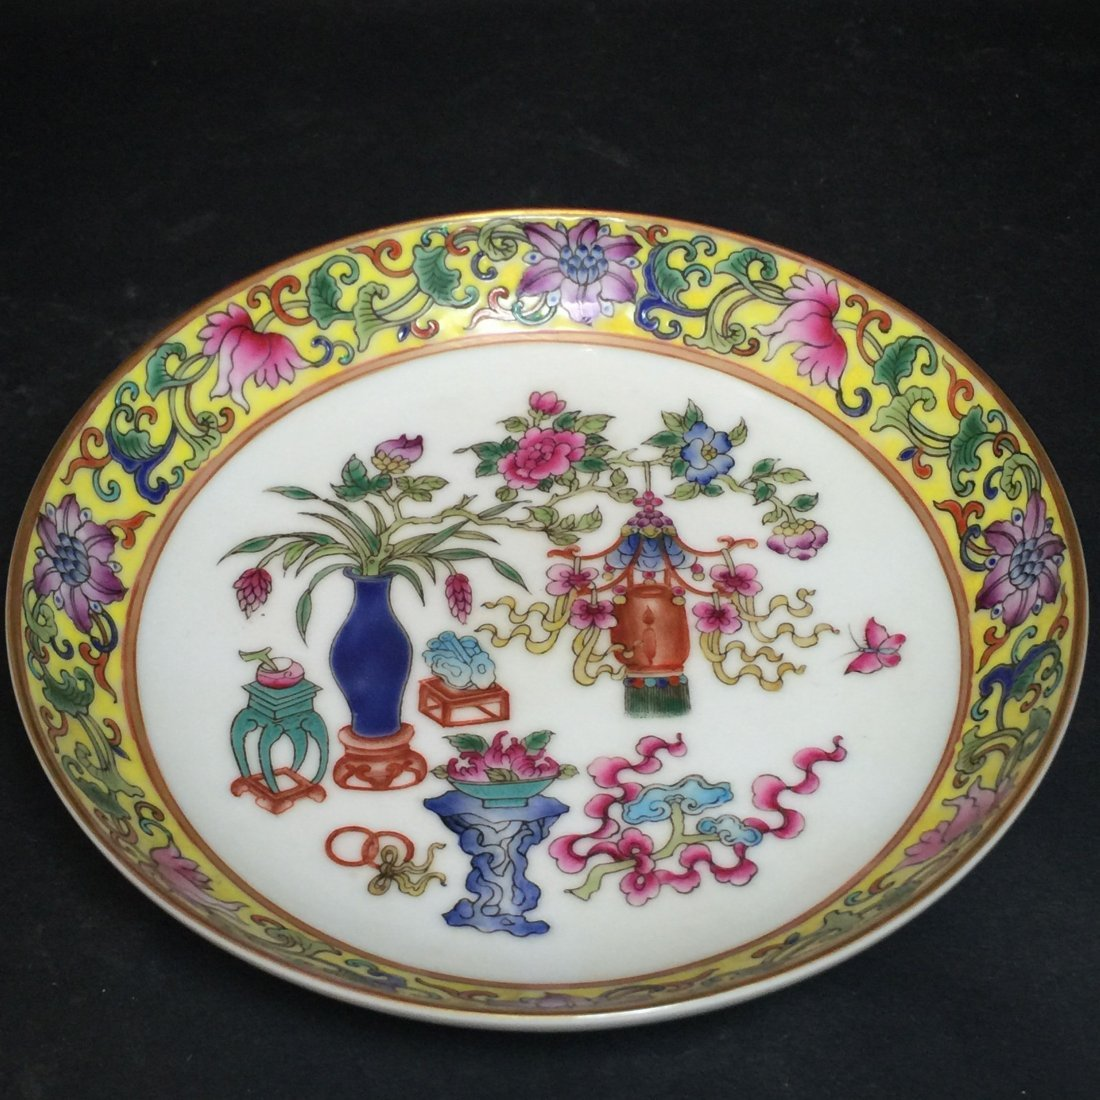 A Yellow and White Chinese Plant-filled Plate